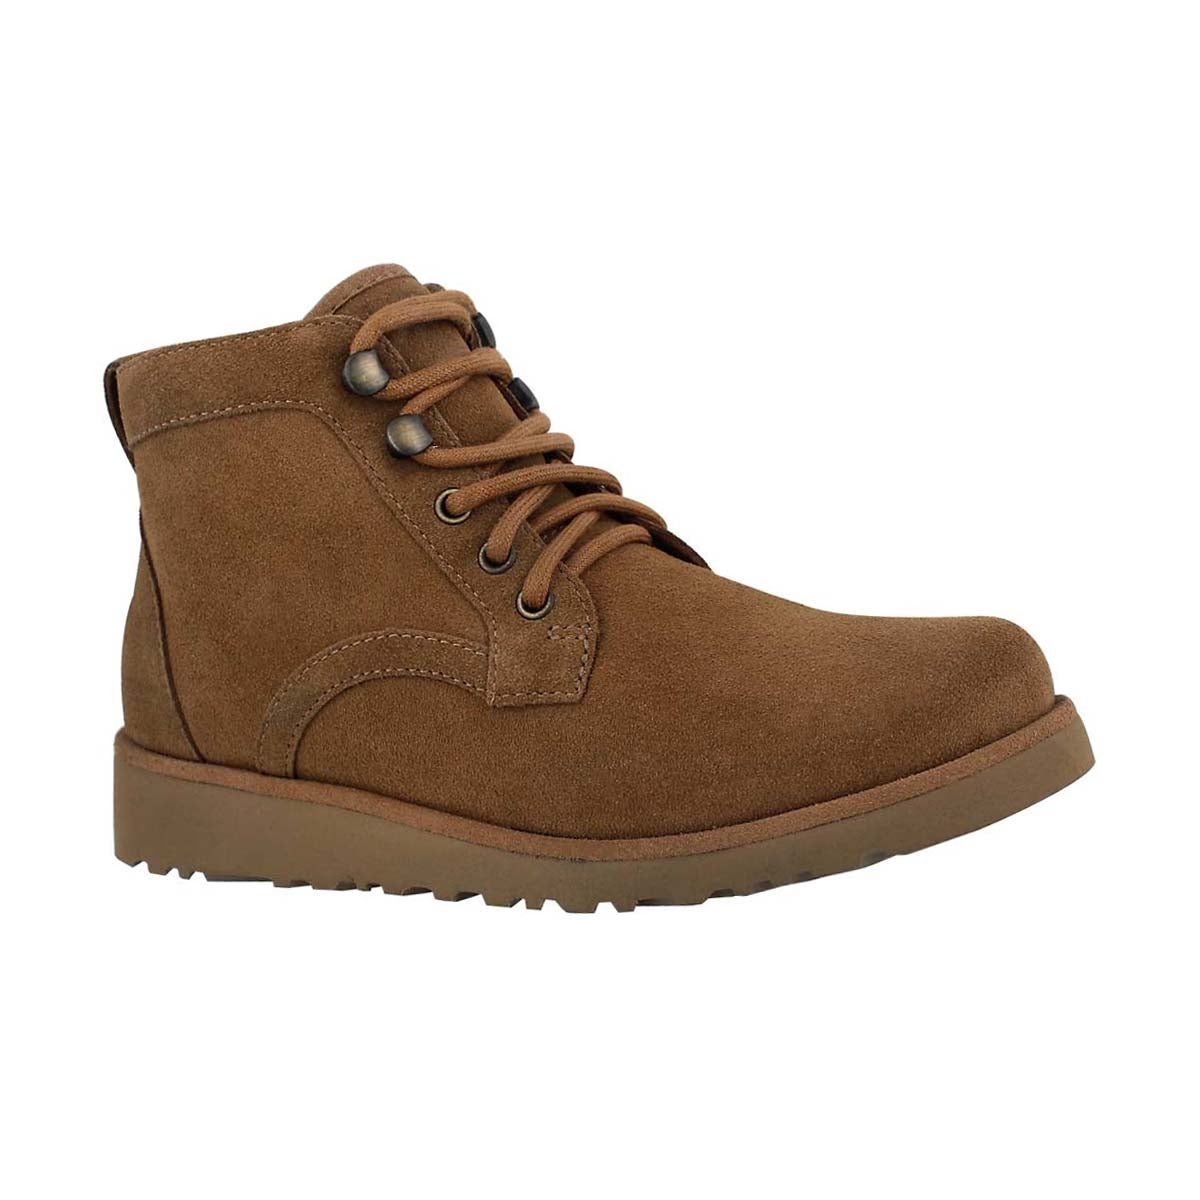 Girls' BANAN chestnut lace up ankle boots